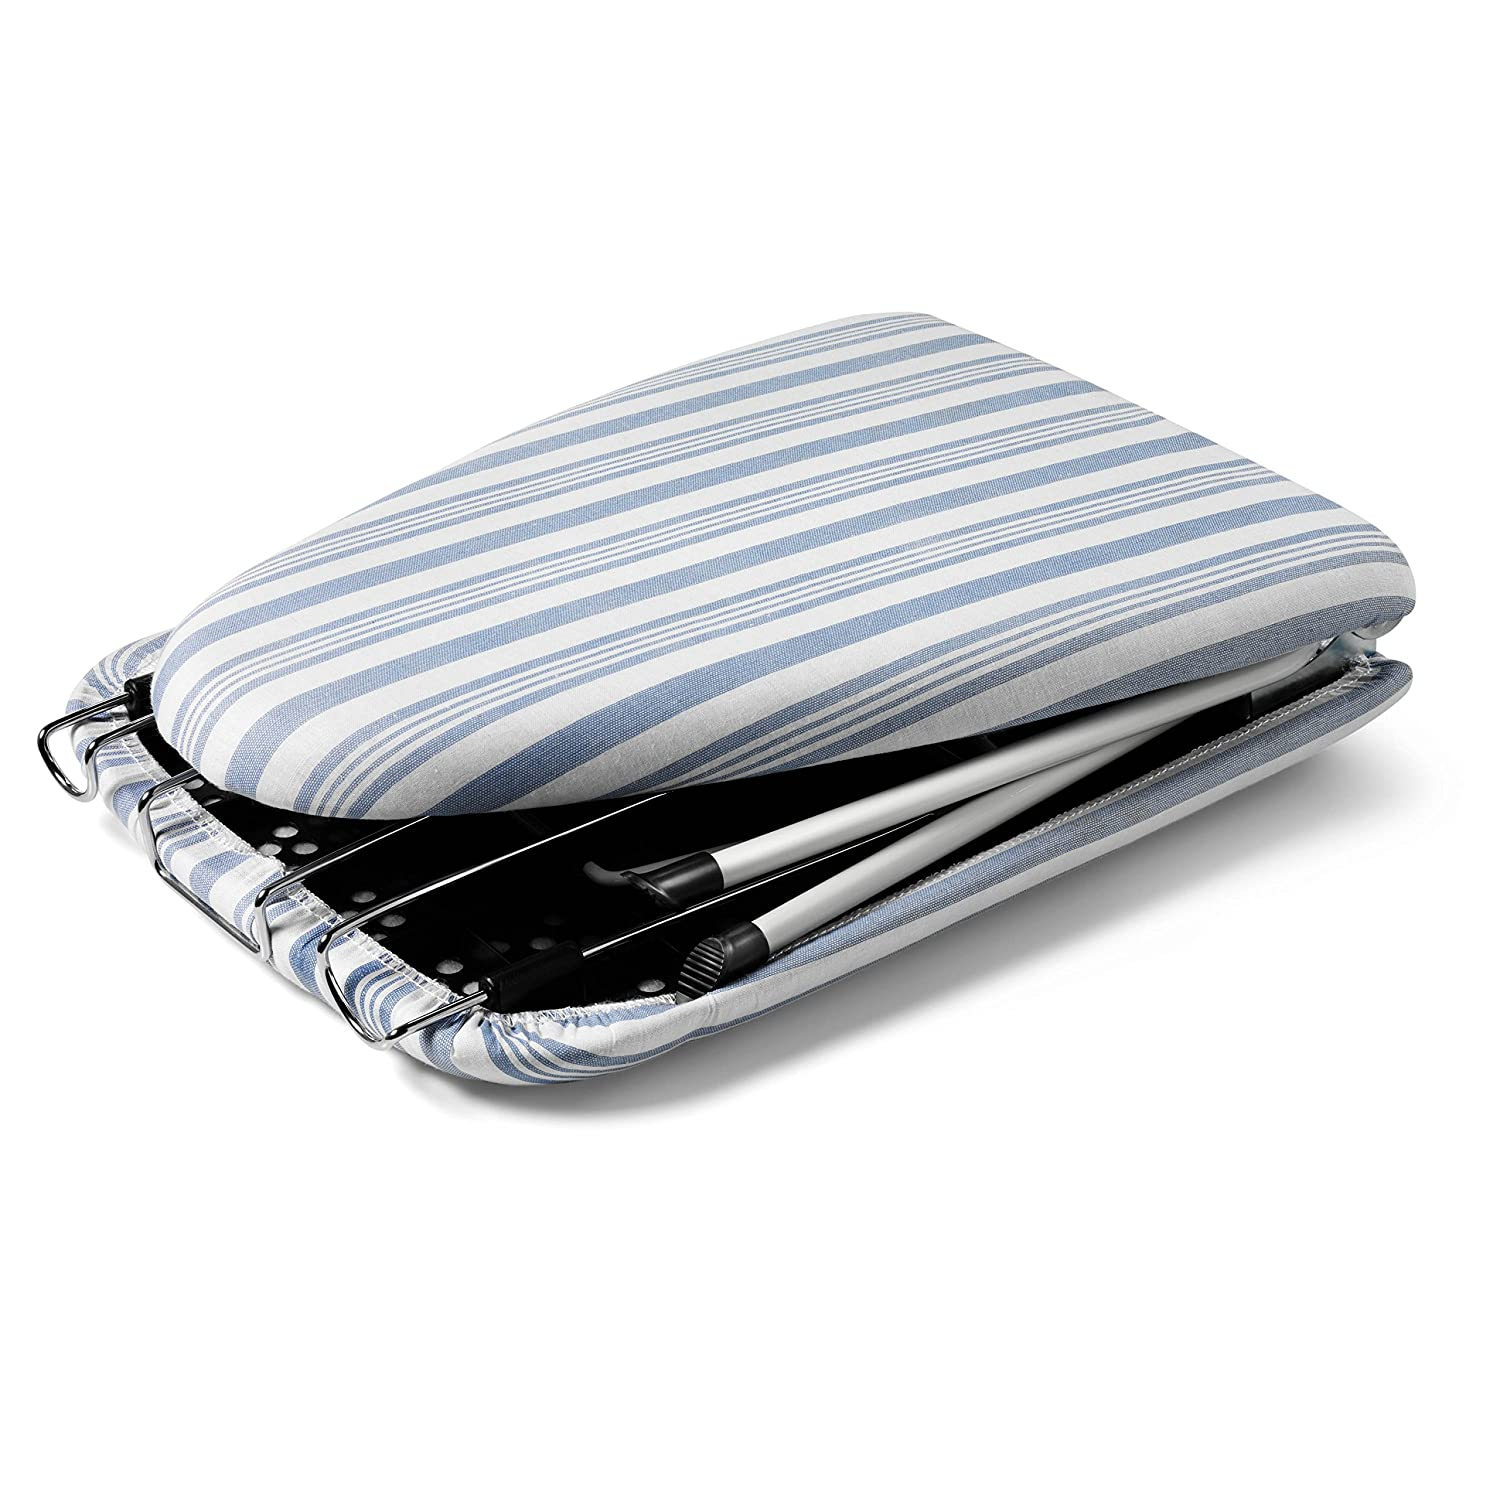 Amazon.com: Honey Can Do Foldable Tabletop Ironing Board With Iron Rest:  Home U0026 Kitchen